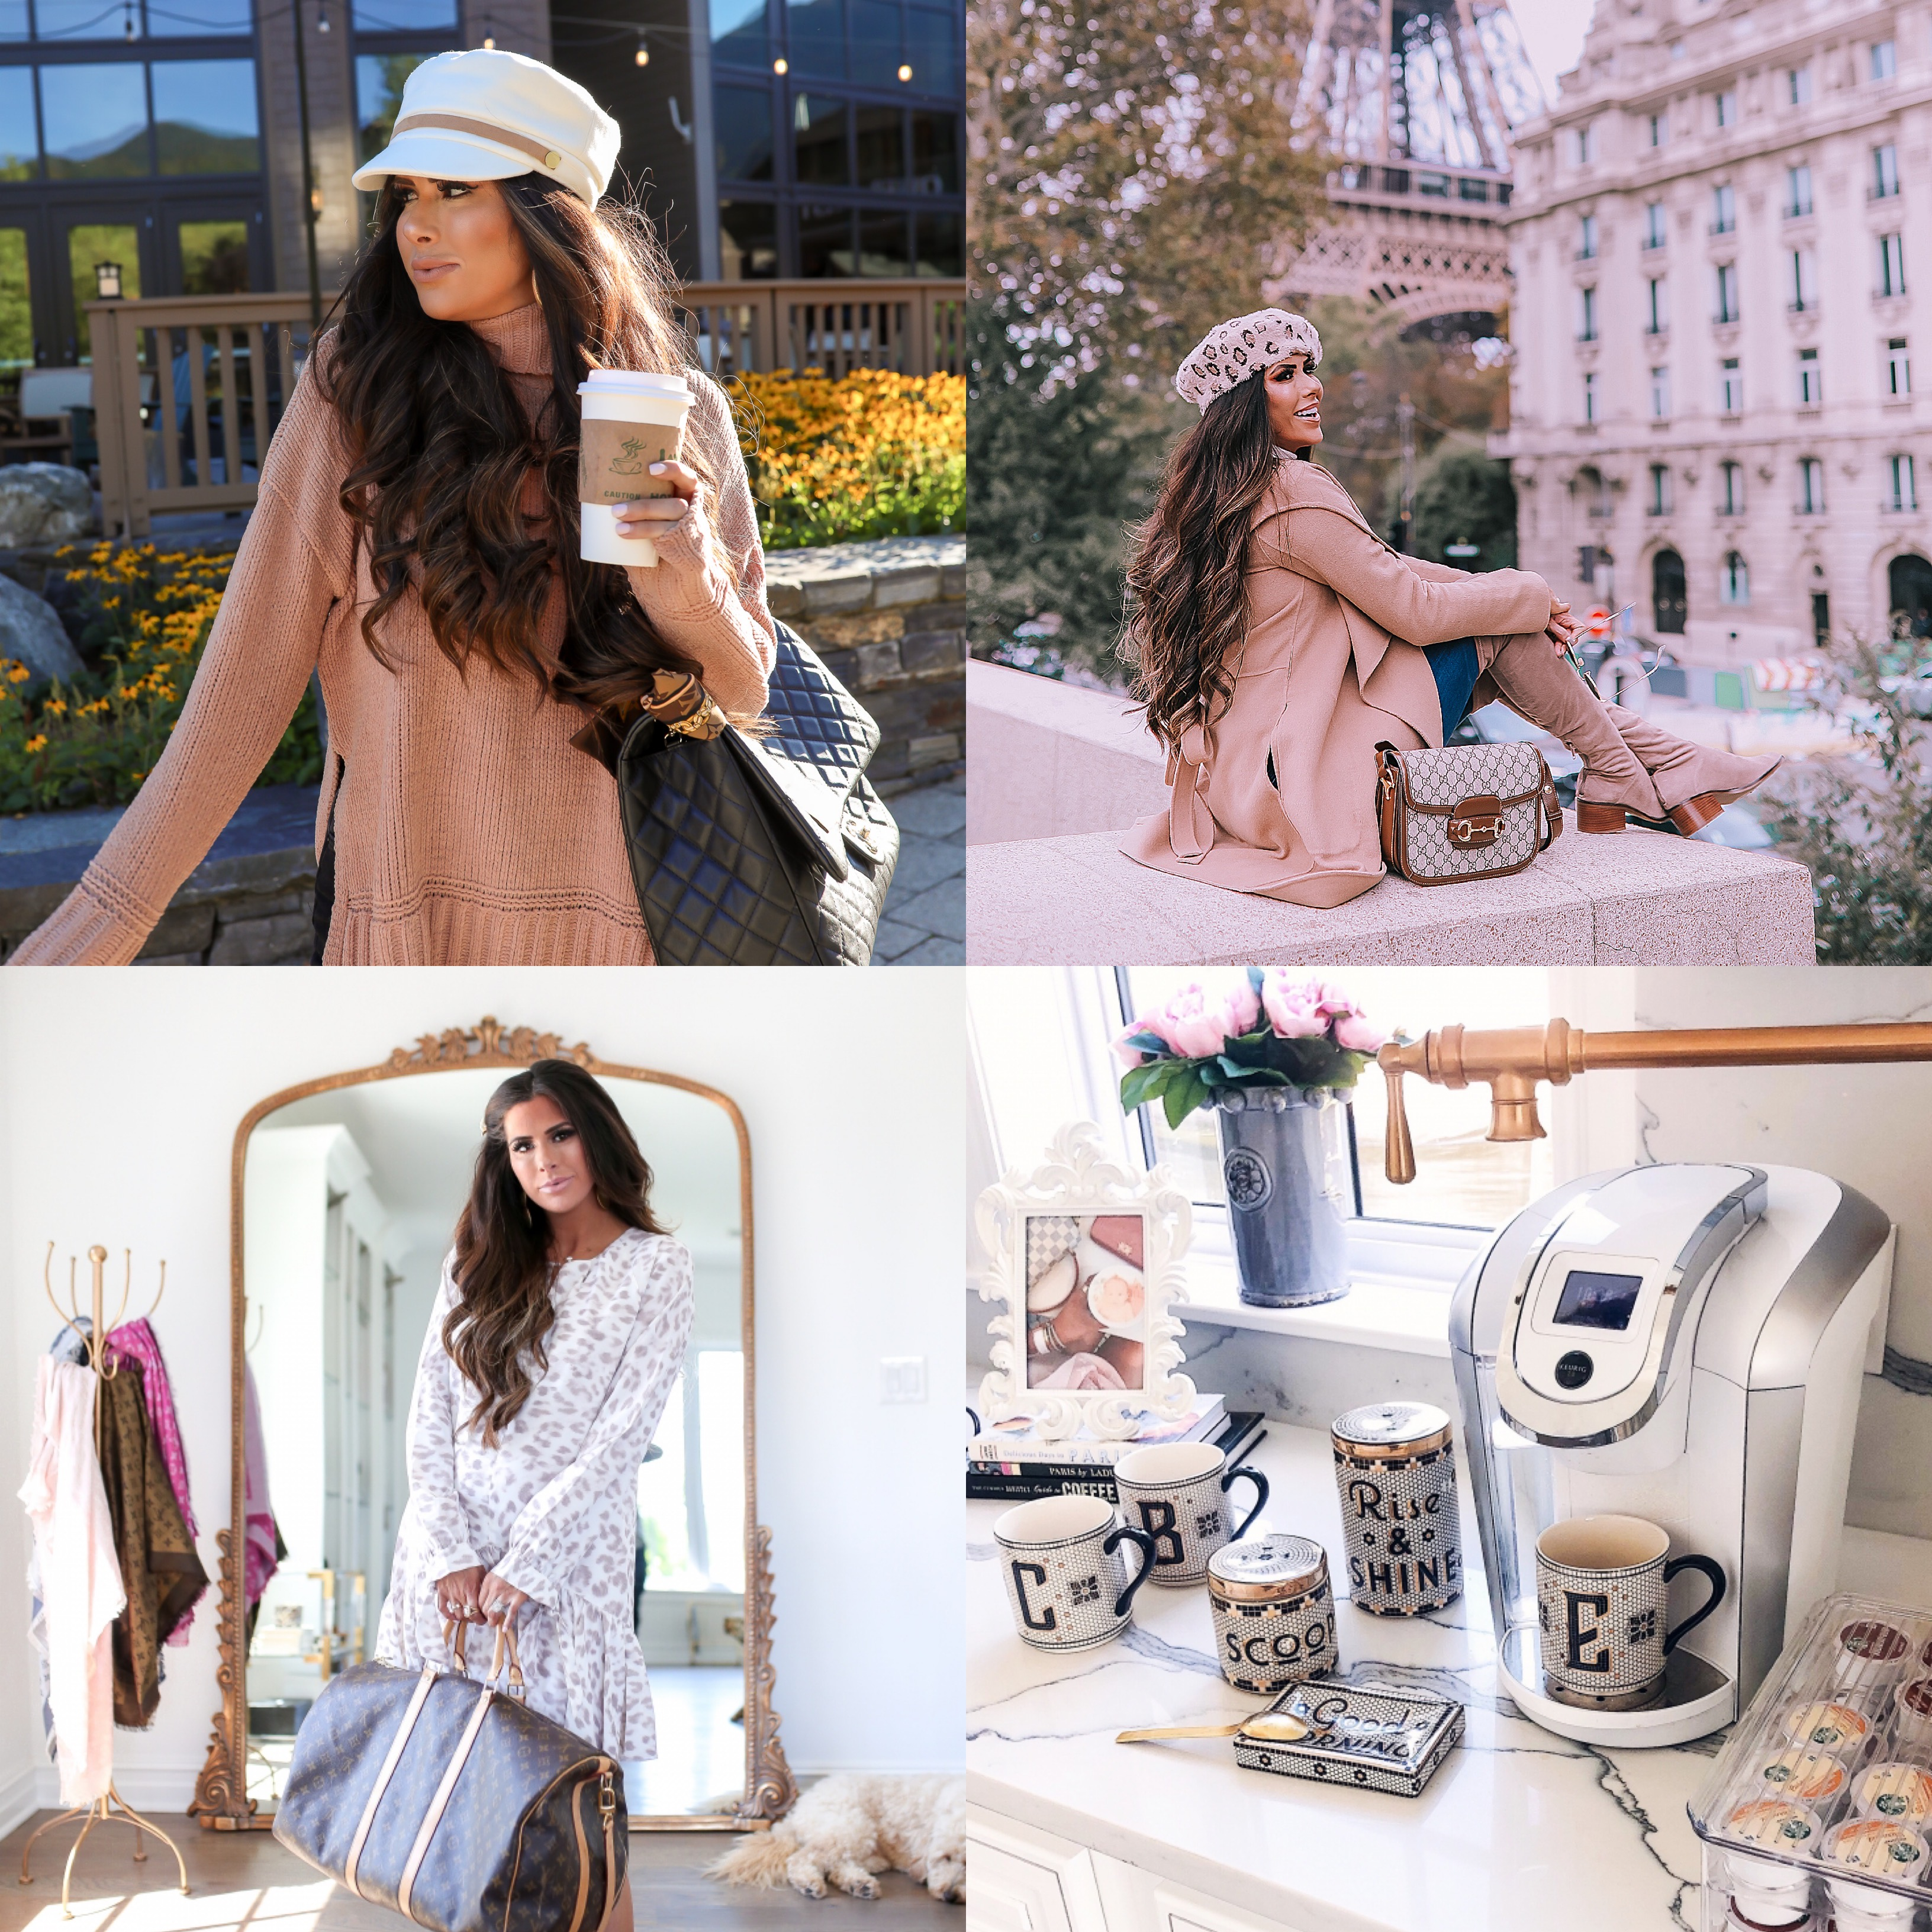 top best black friday sales, anthropologie black friday sale, aerie black friday sale | Mega Black Friday Sales and Deals Guide!! by popular Oklahoma life and style blog, The Sweetest Thing: collage image of a woman wearing various Black Friday sale items.